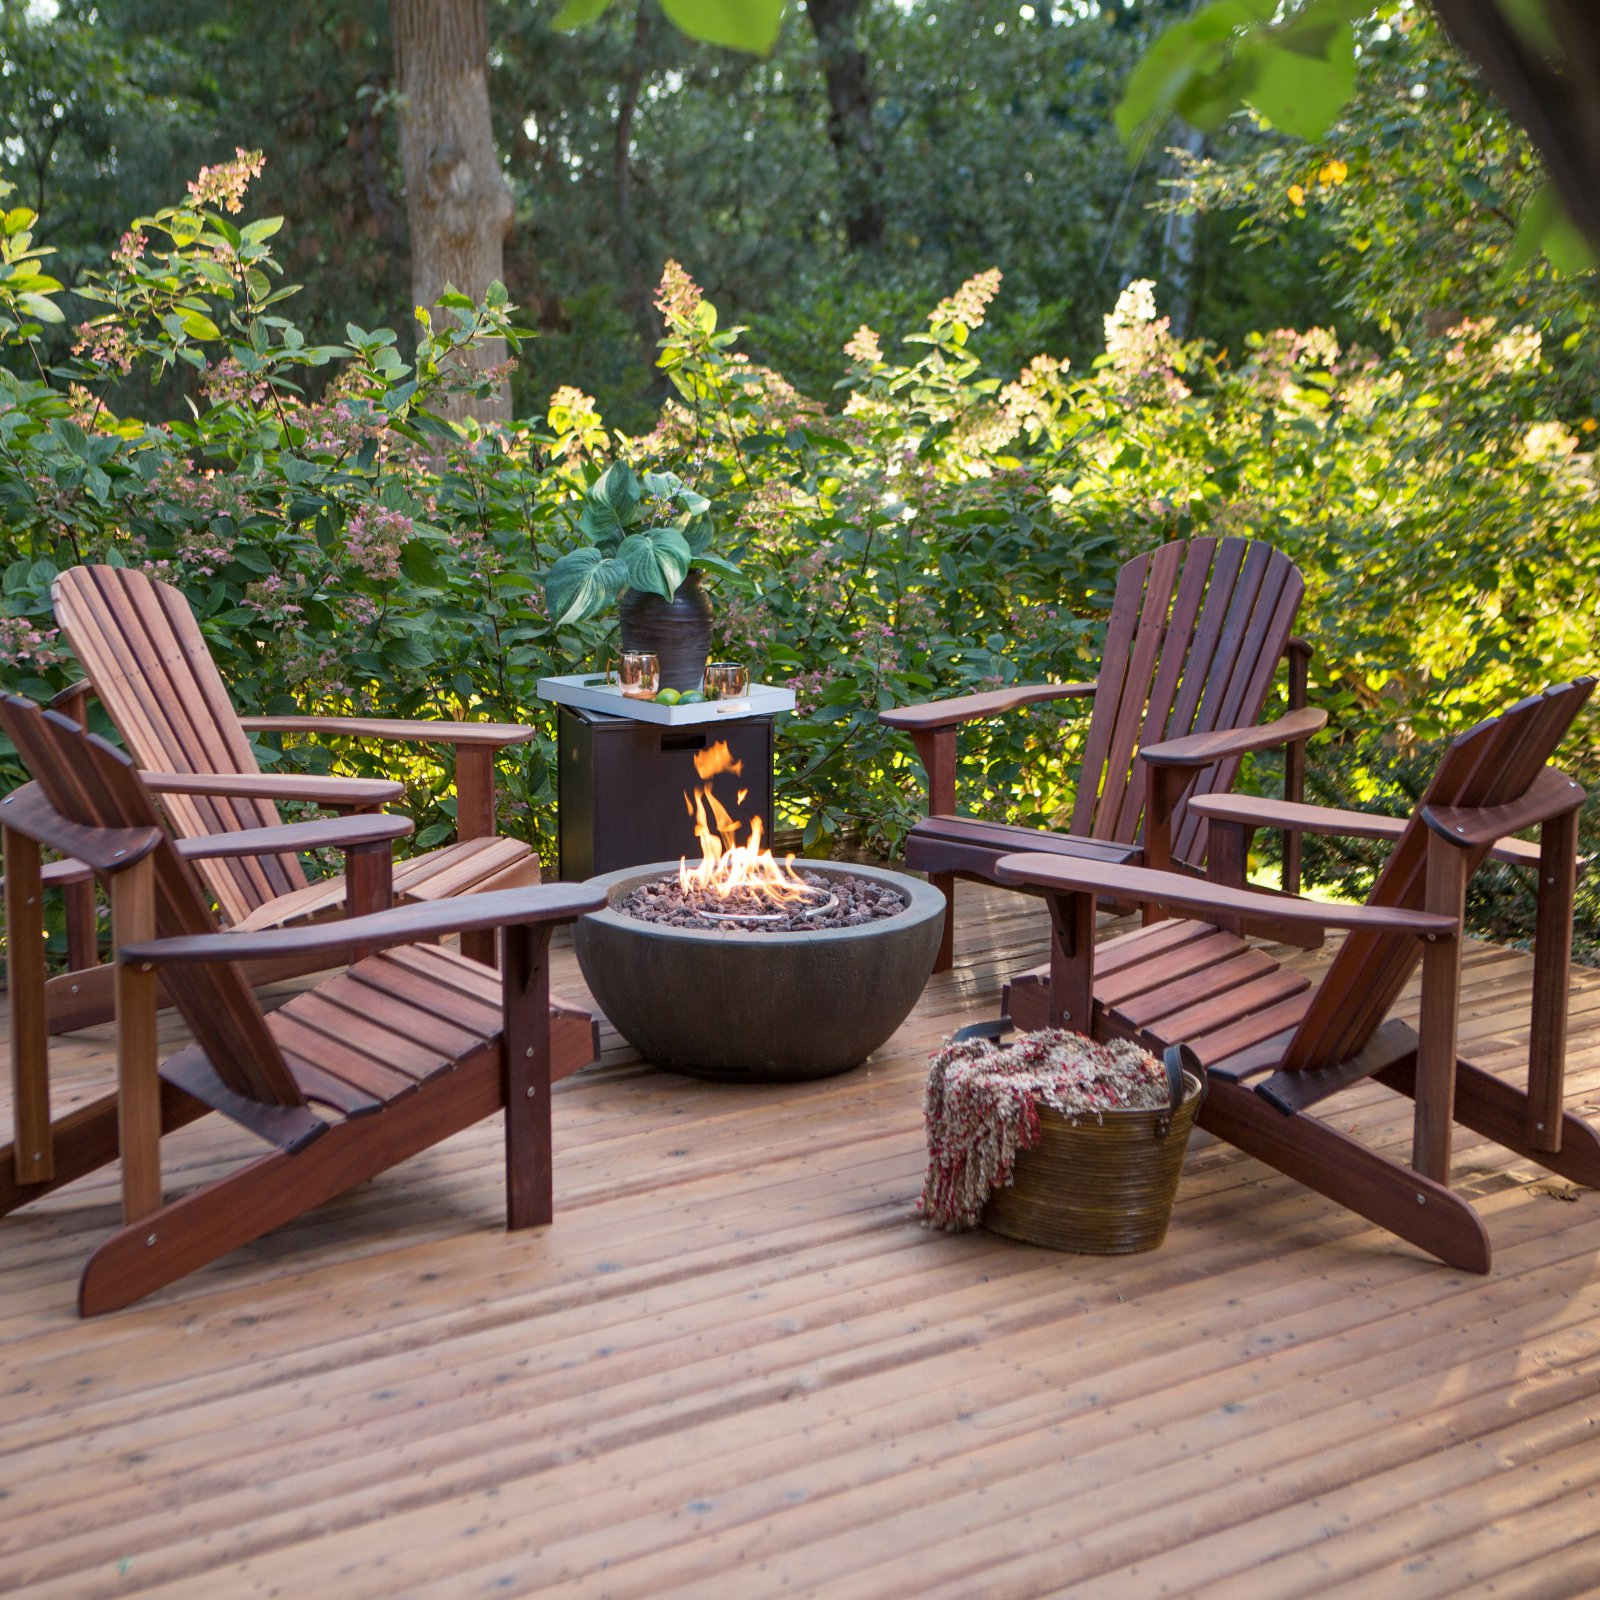 Belham Living Richmond Deluxe 5 pc. Adirondack Fire Pit Chat Set